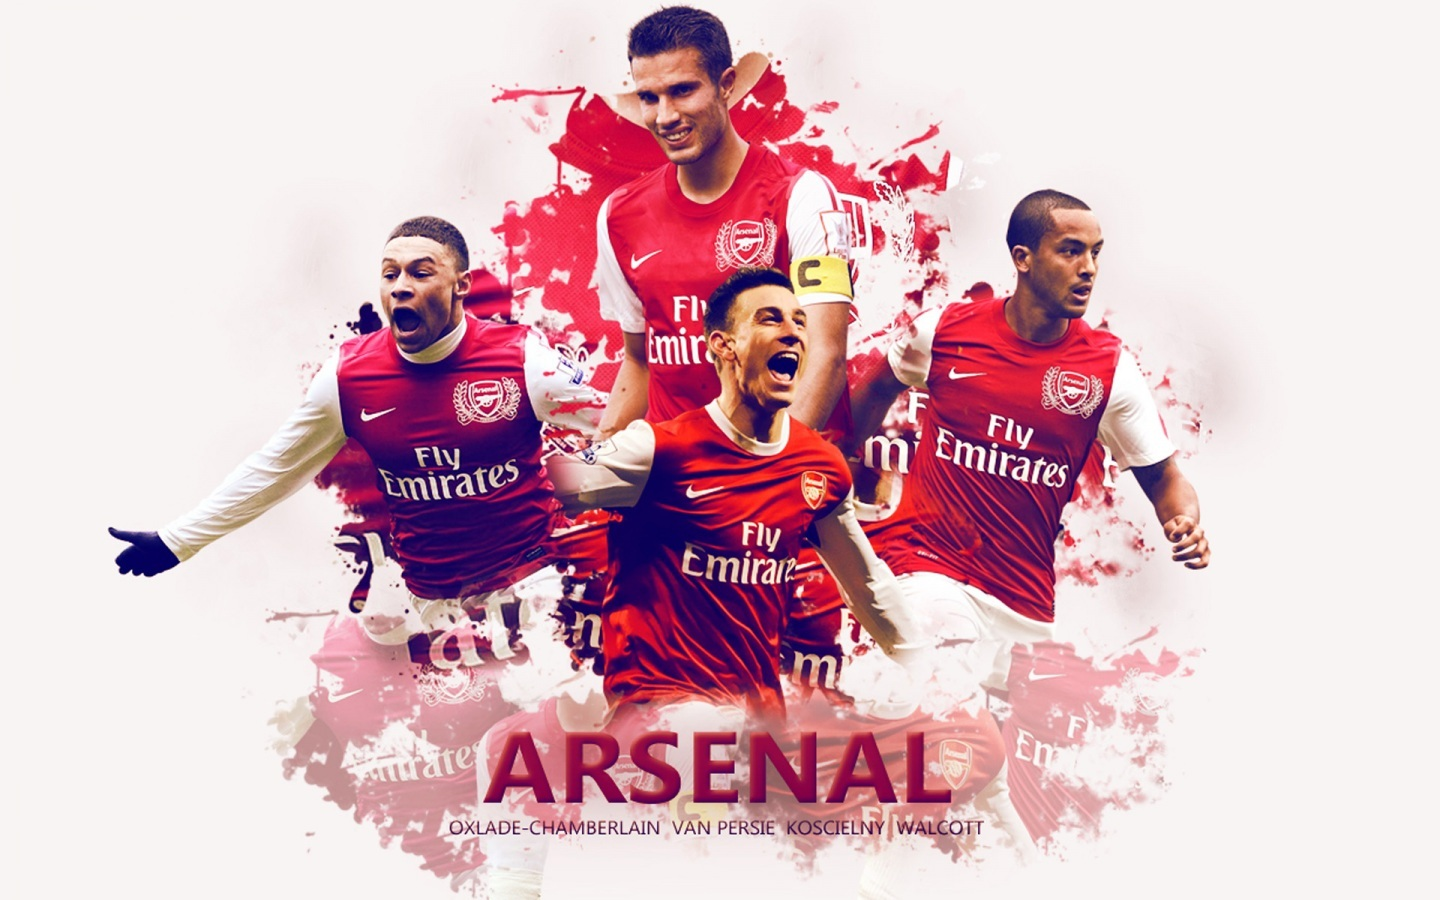 Arsenal Players Wallpaper